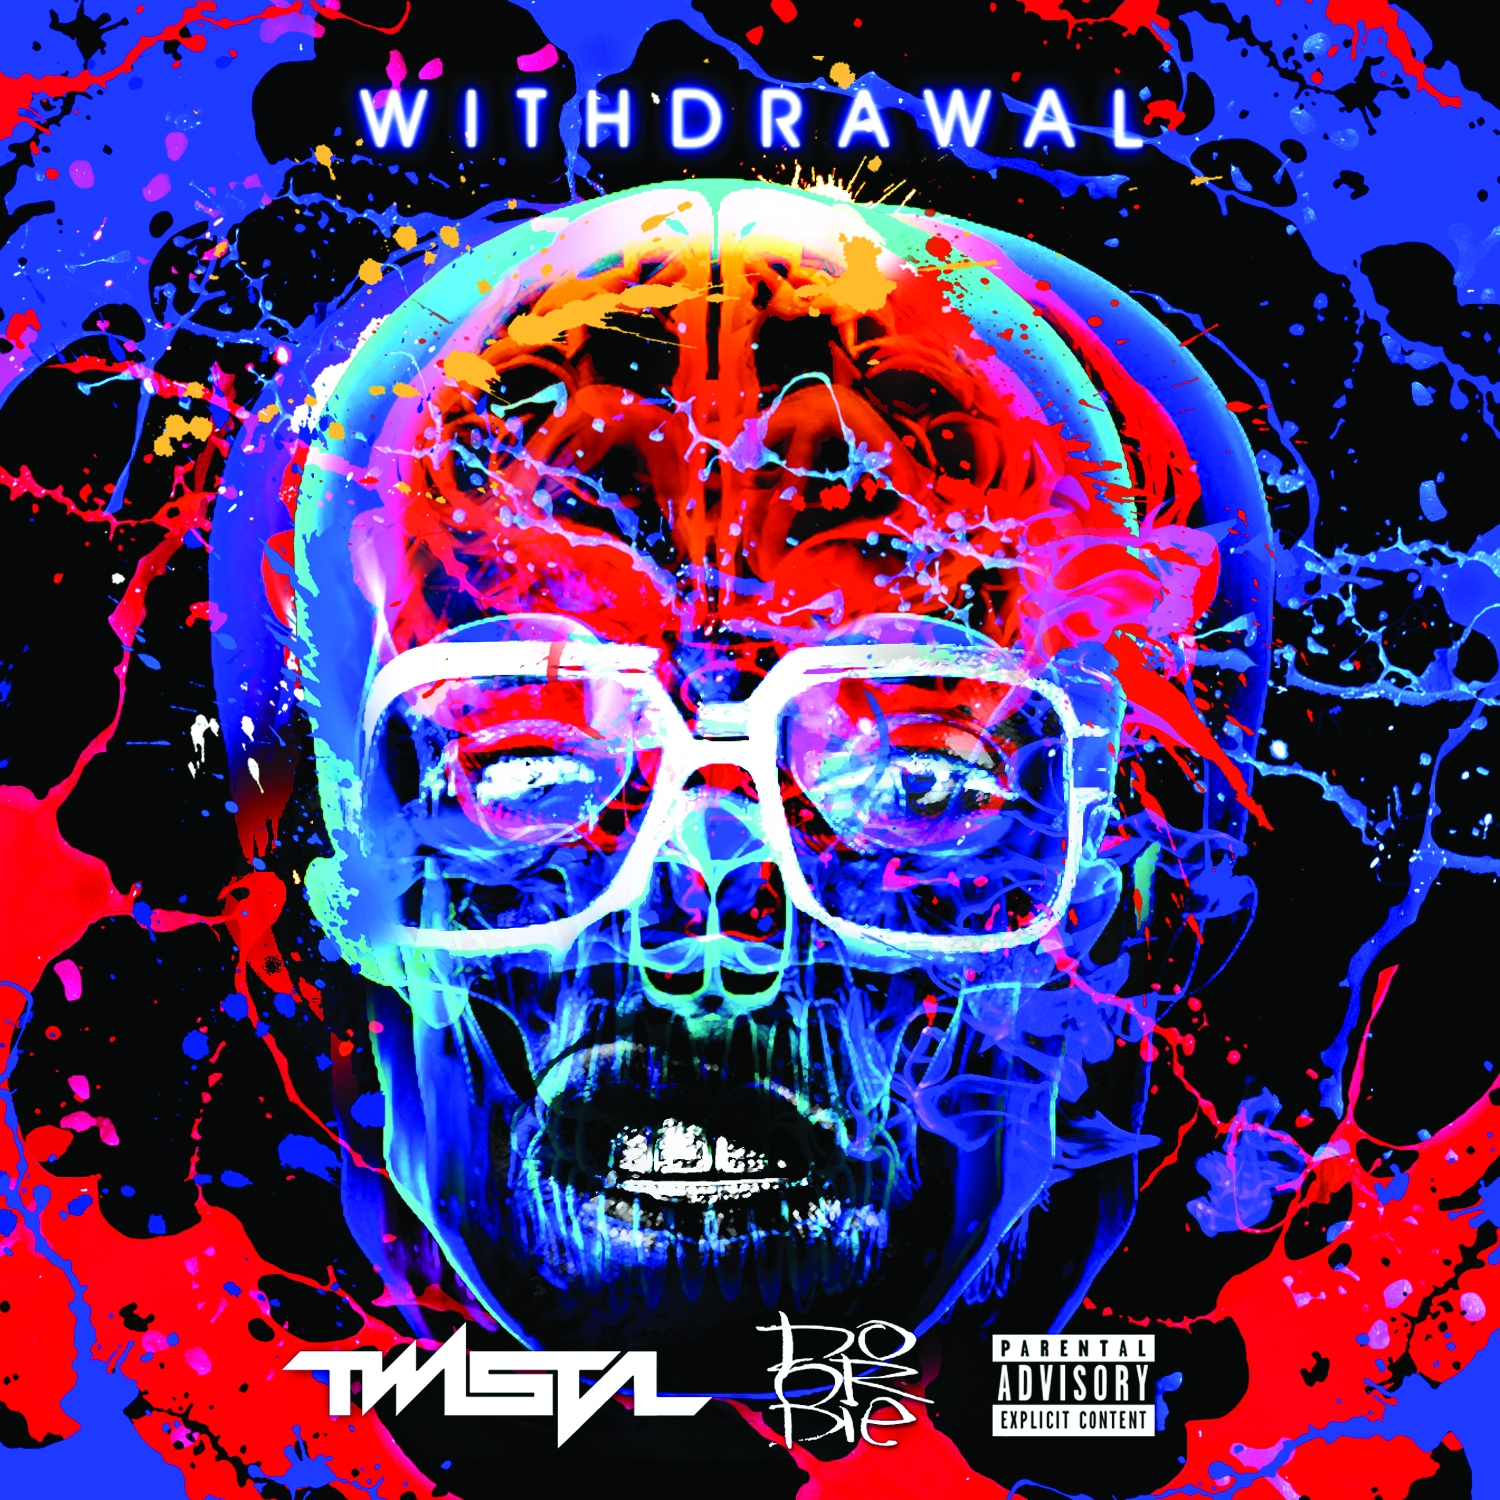 twista do or die withdrawal release date cover art tracklist